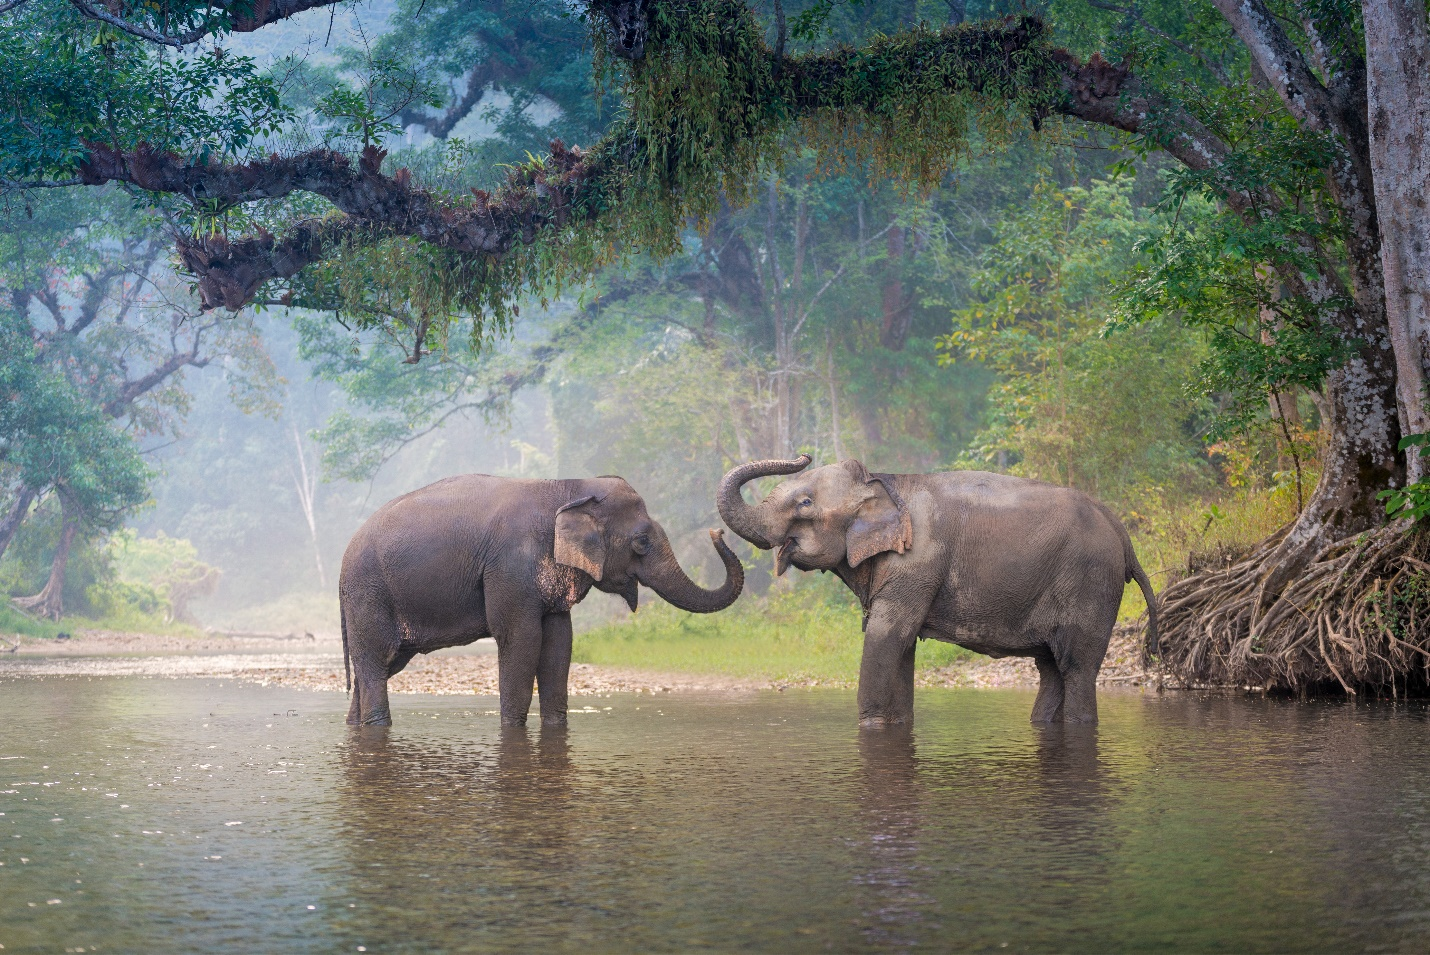 Elephants playing in the water  Description automatically generated with medium confidence